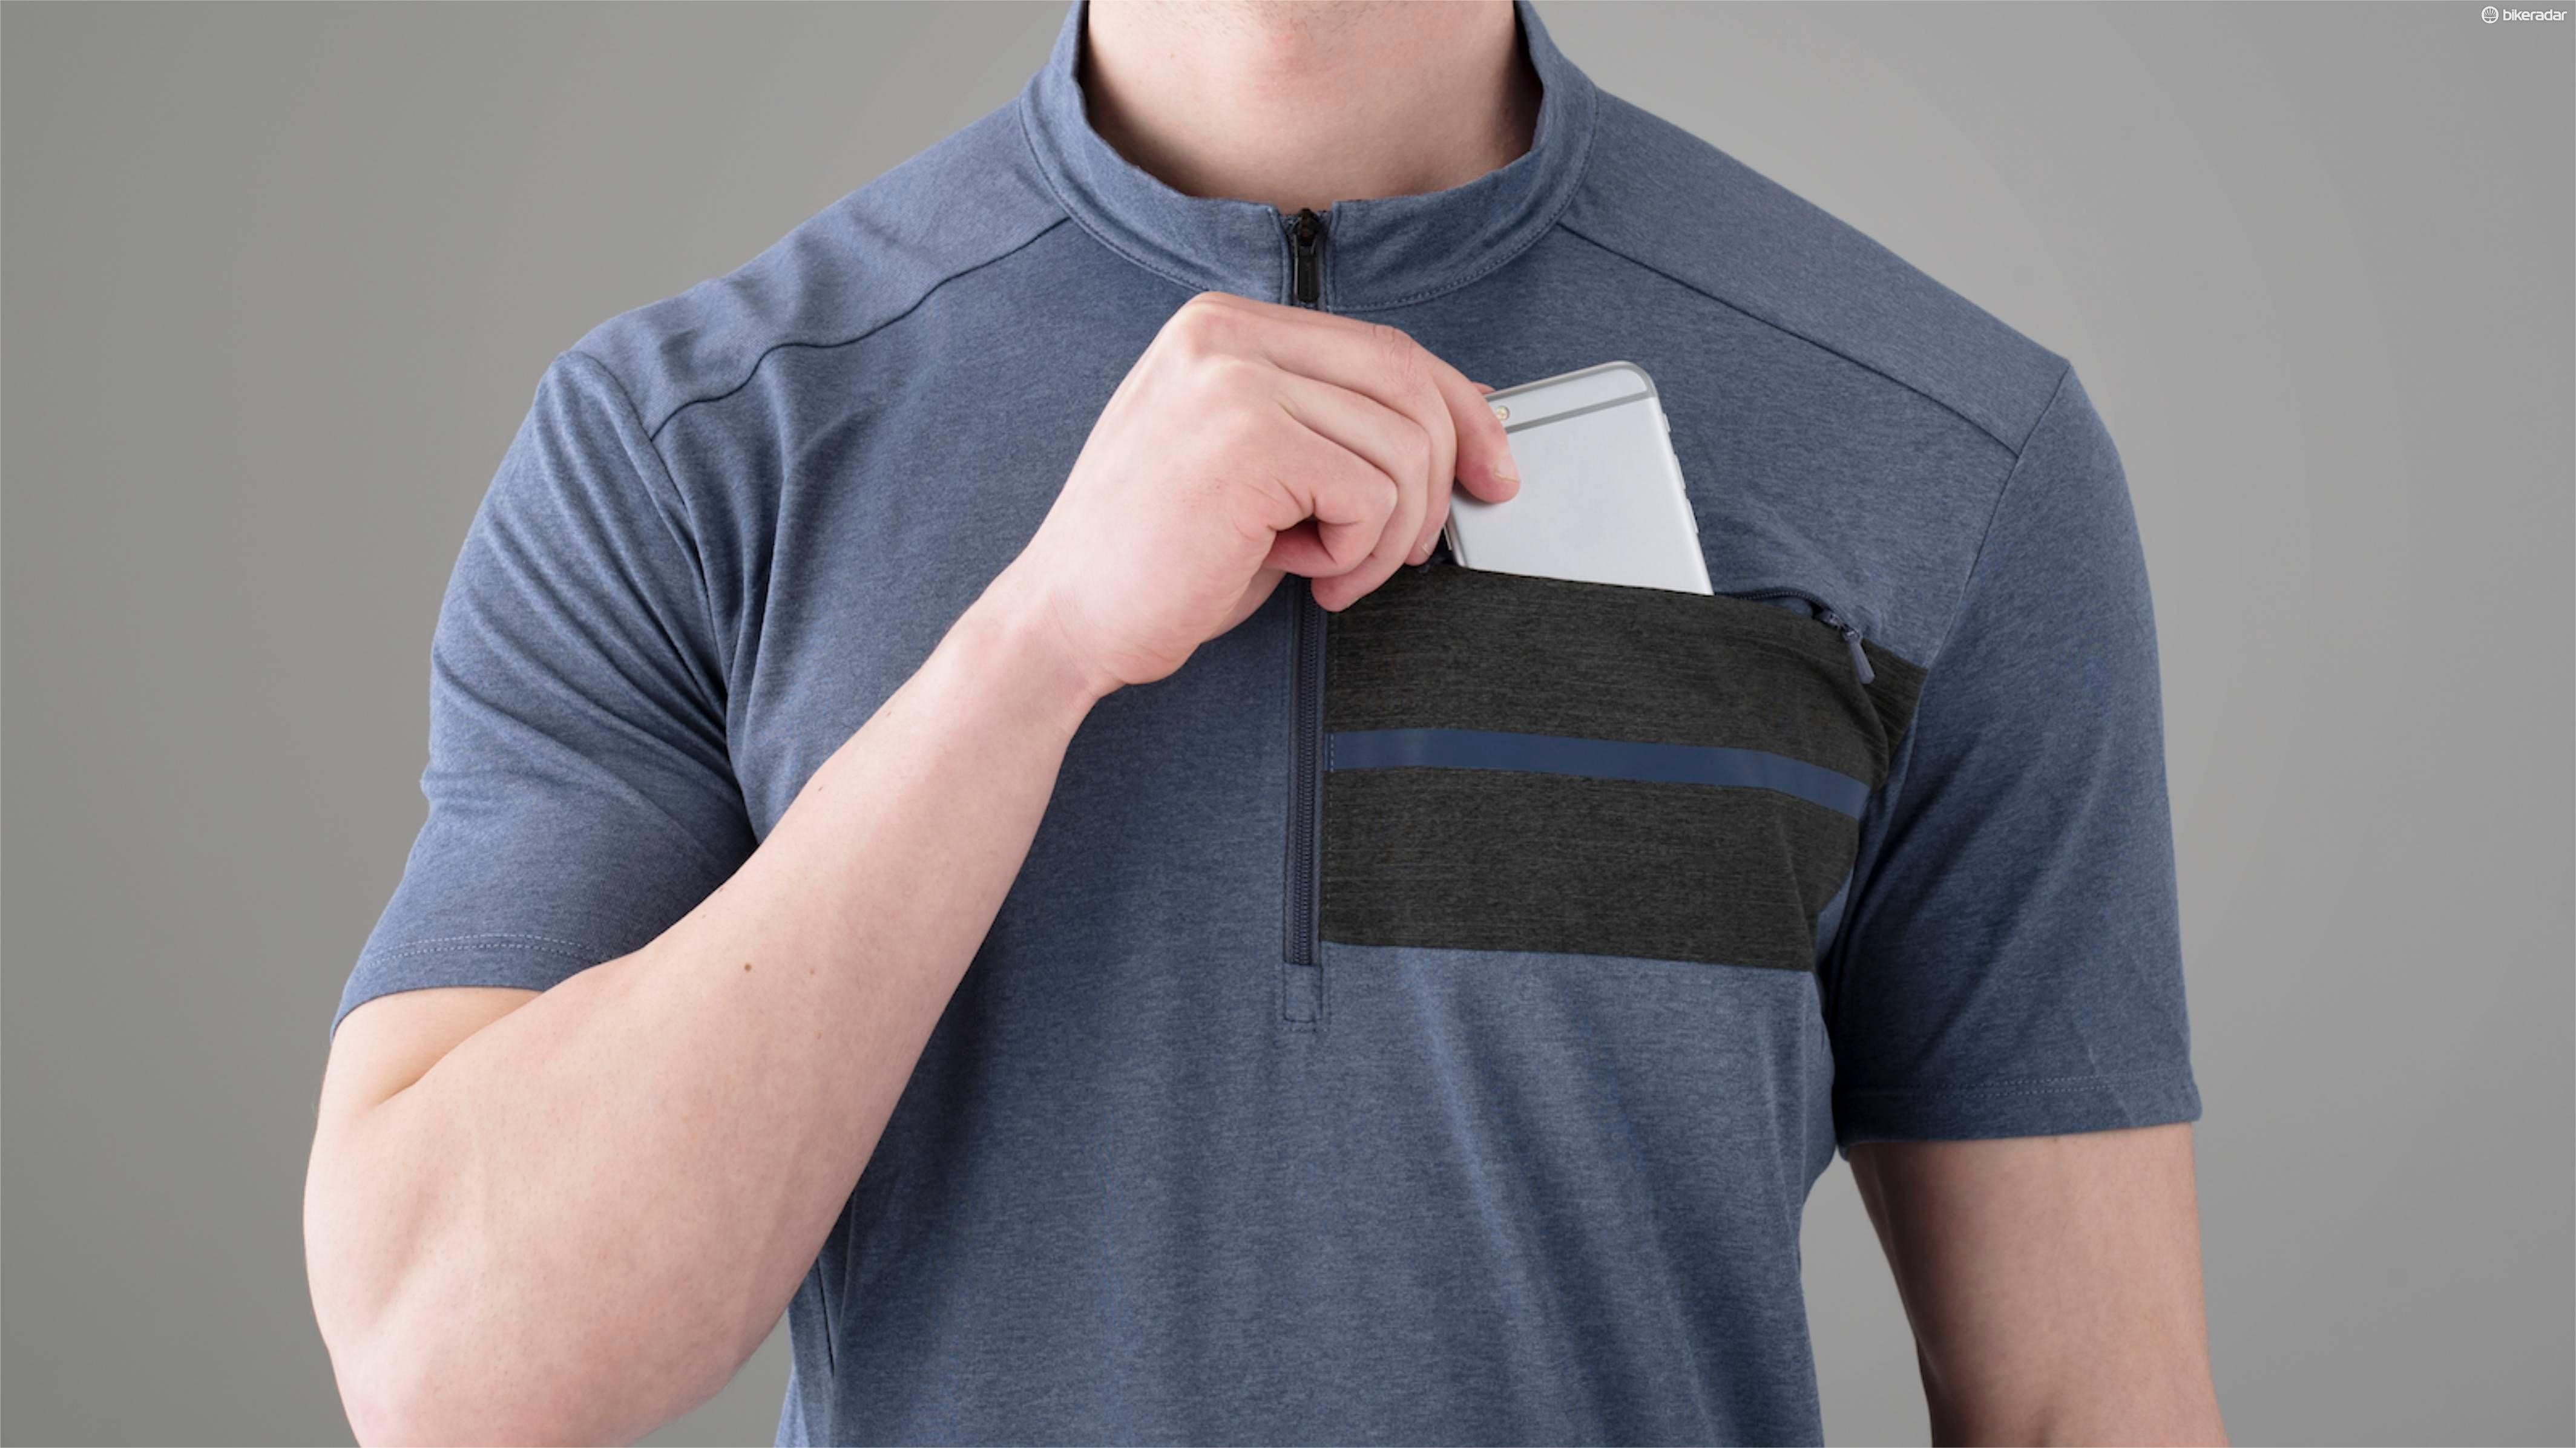 There are some nice details on the Transit casual bike jerseys, like a phone pocket on the chest